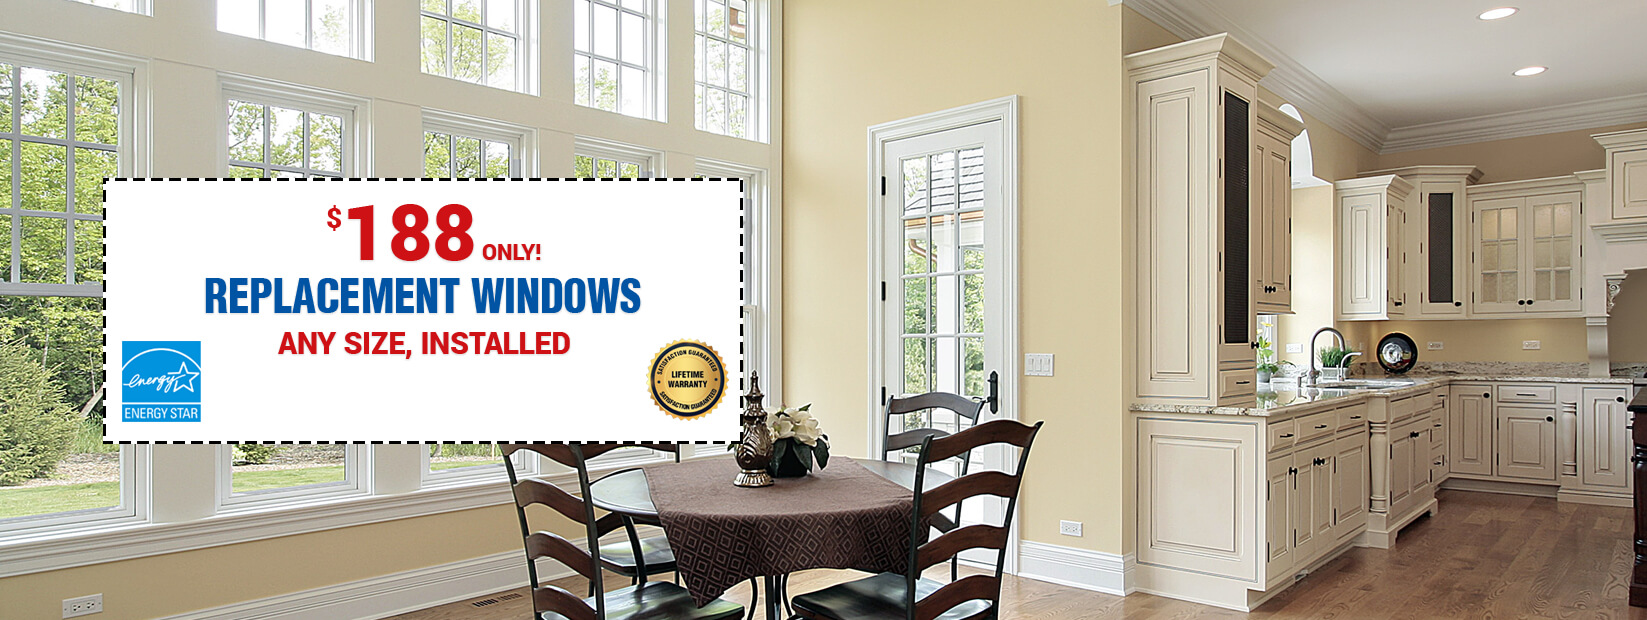 Energy Efficient Replacement Windows at $188